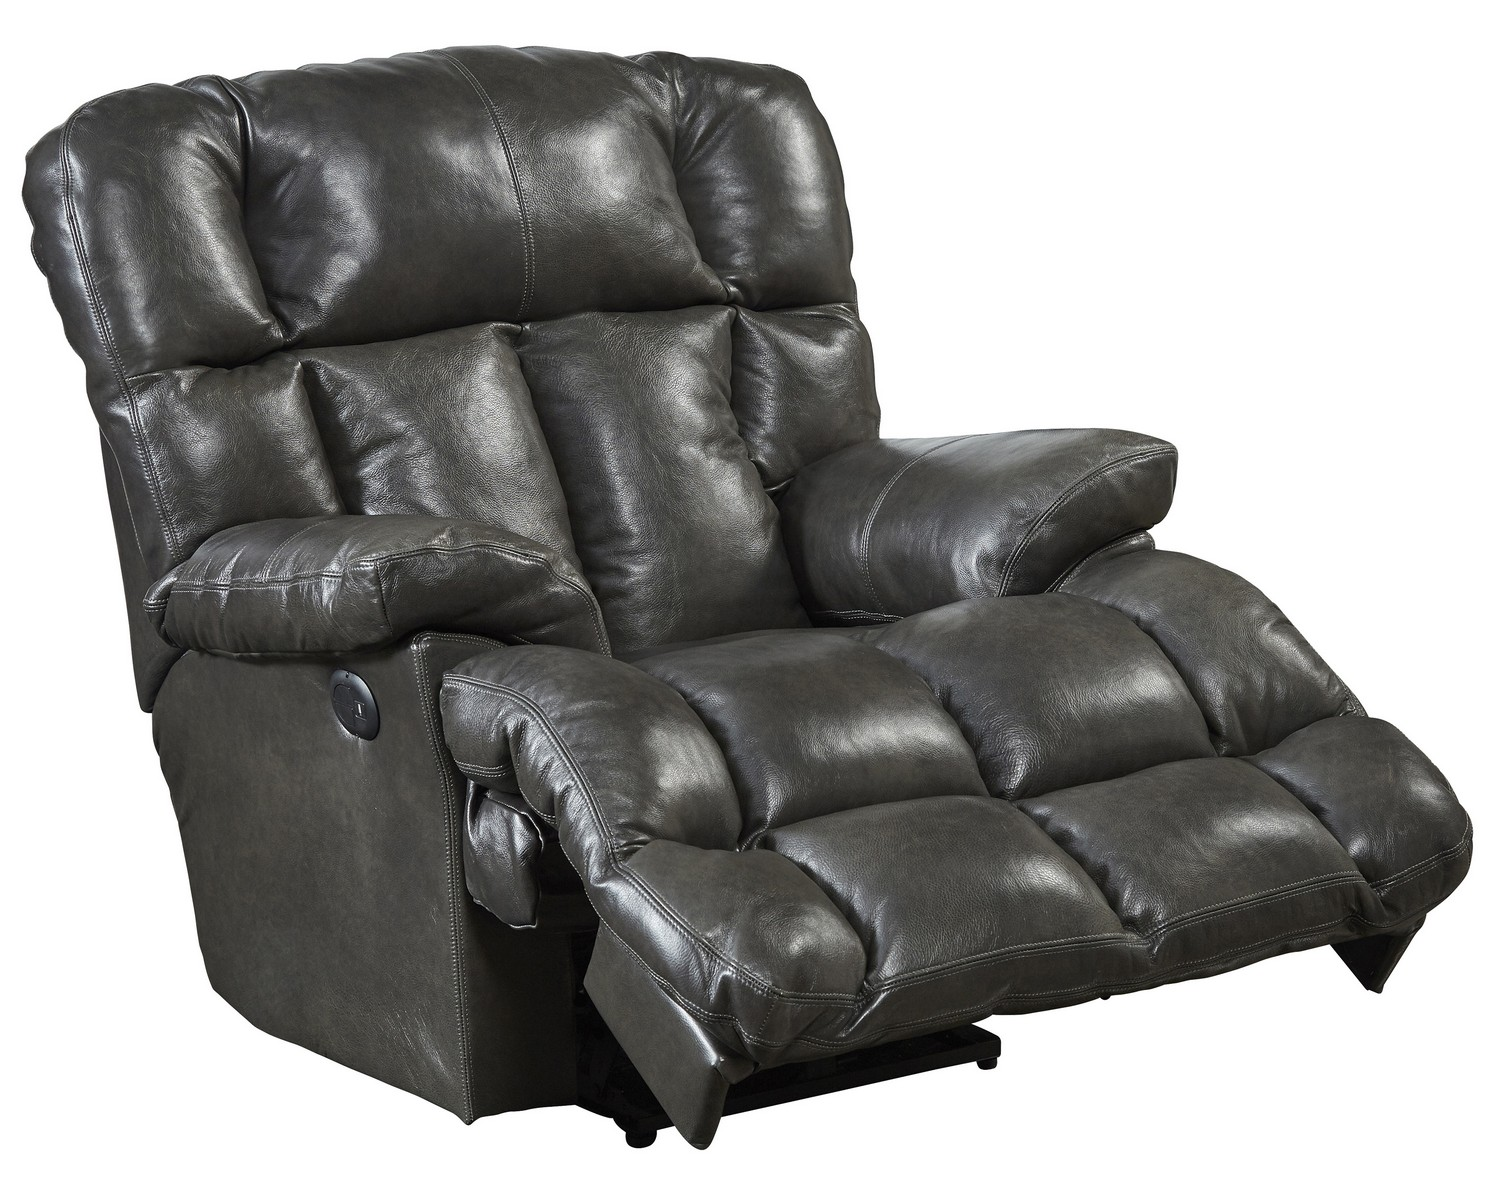 CatNapper Victor Top Grain Leather Power Lay Flat Chaise Recliner - Steel